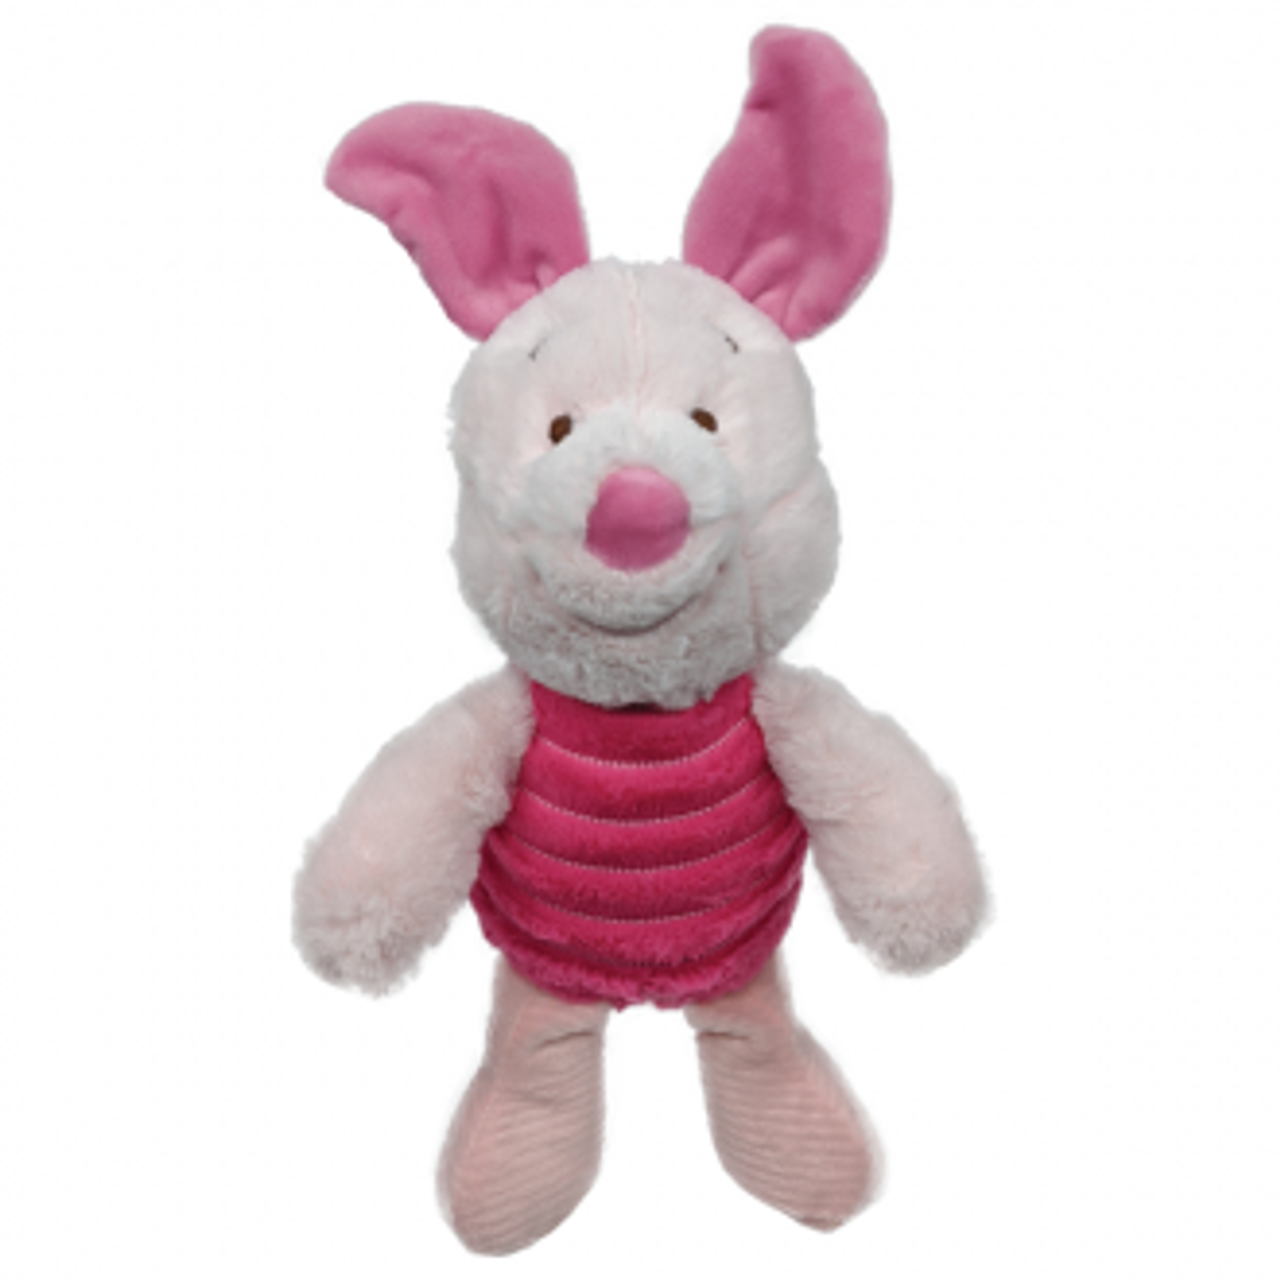 Disney Baby Winnie The Pooh Piglet Beanie Small Plush Toy 23cm at Baby Barn Discounts